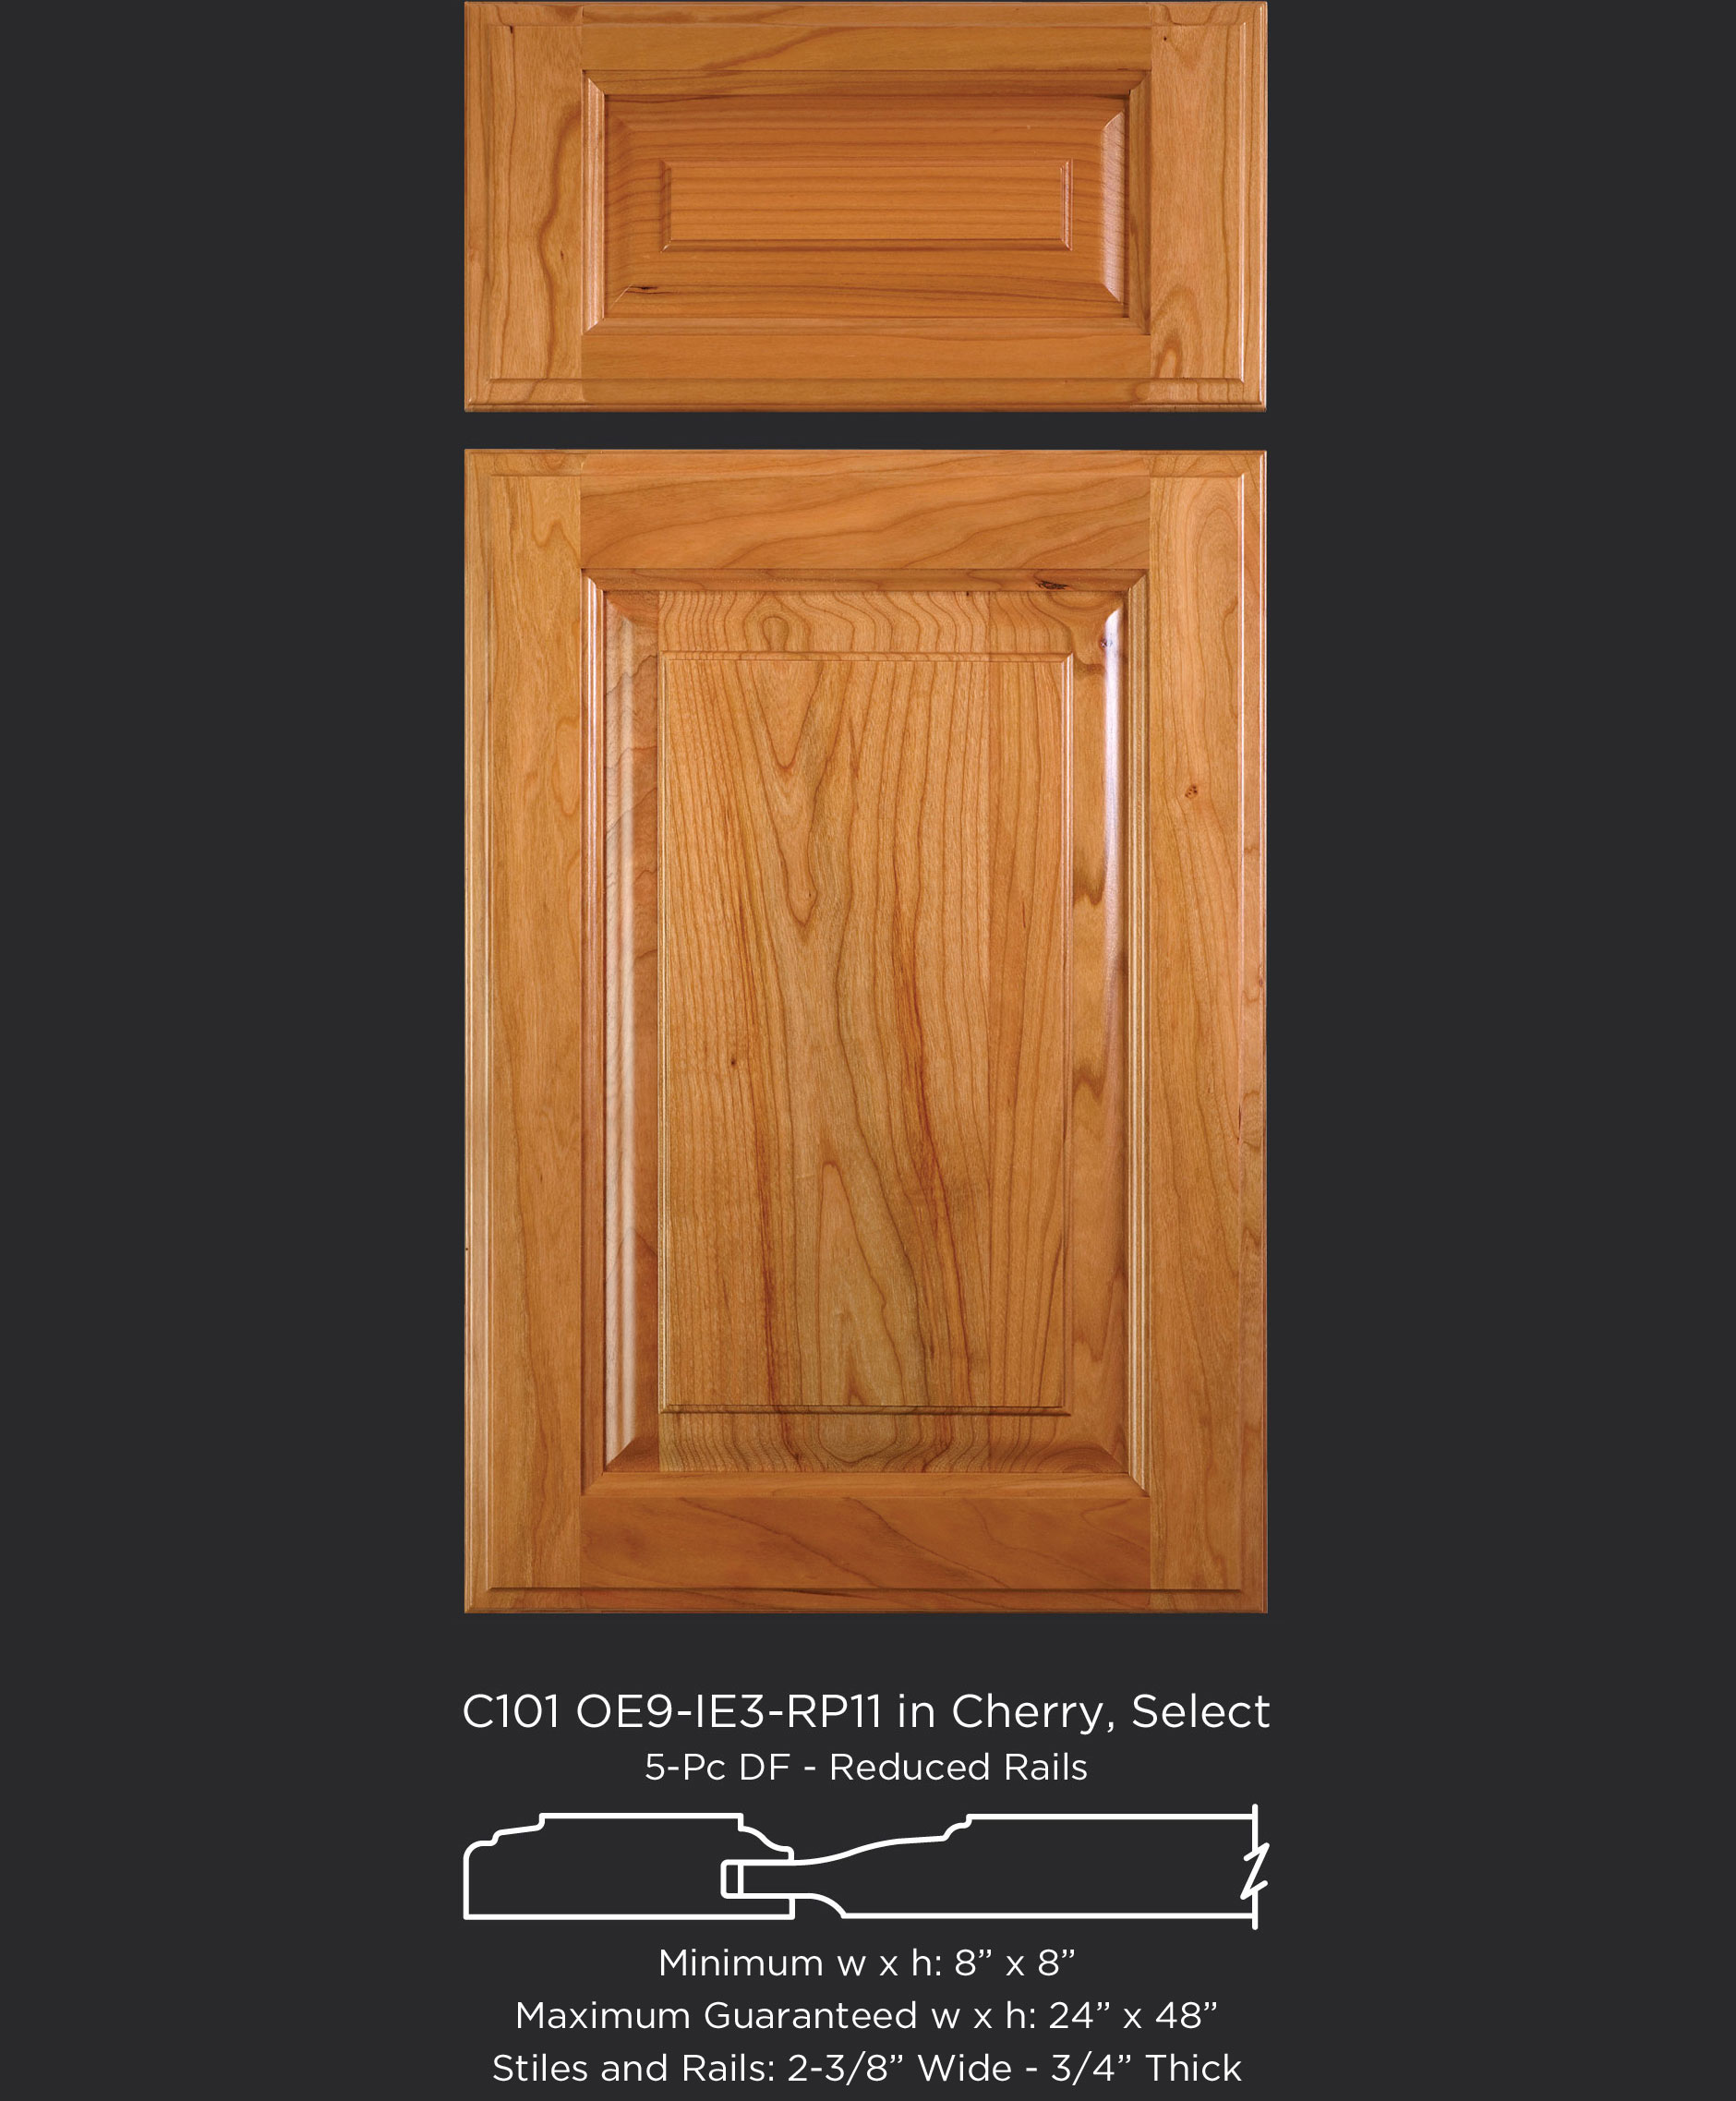 Cope and Stick Cabinet Door C101 OE9-IE3-RP11 Cherry, Select and 5 piece drawer front with reduced rails